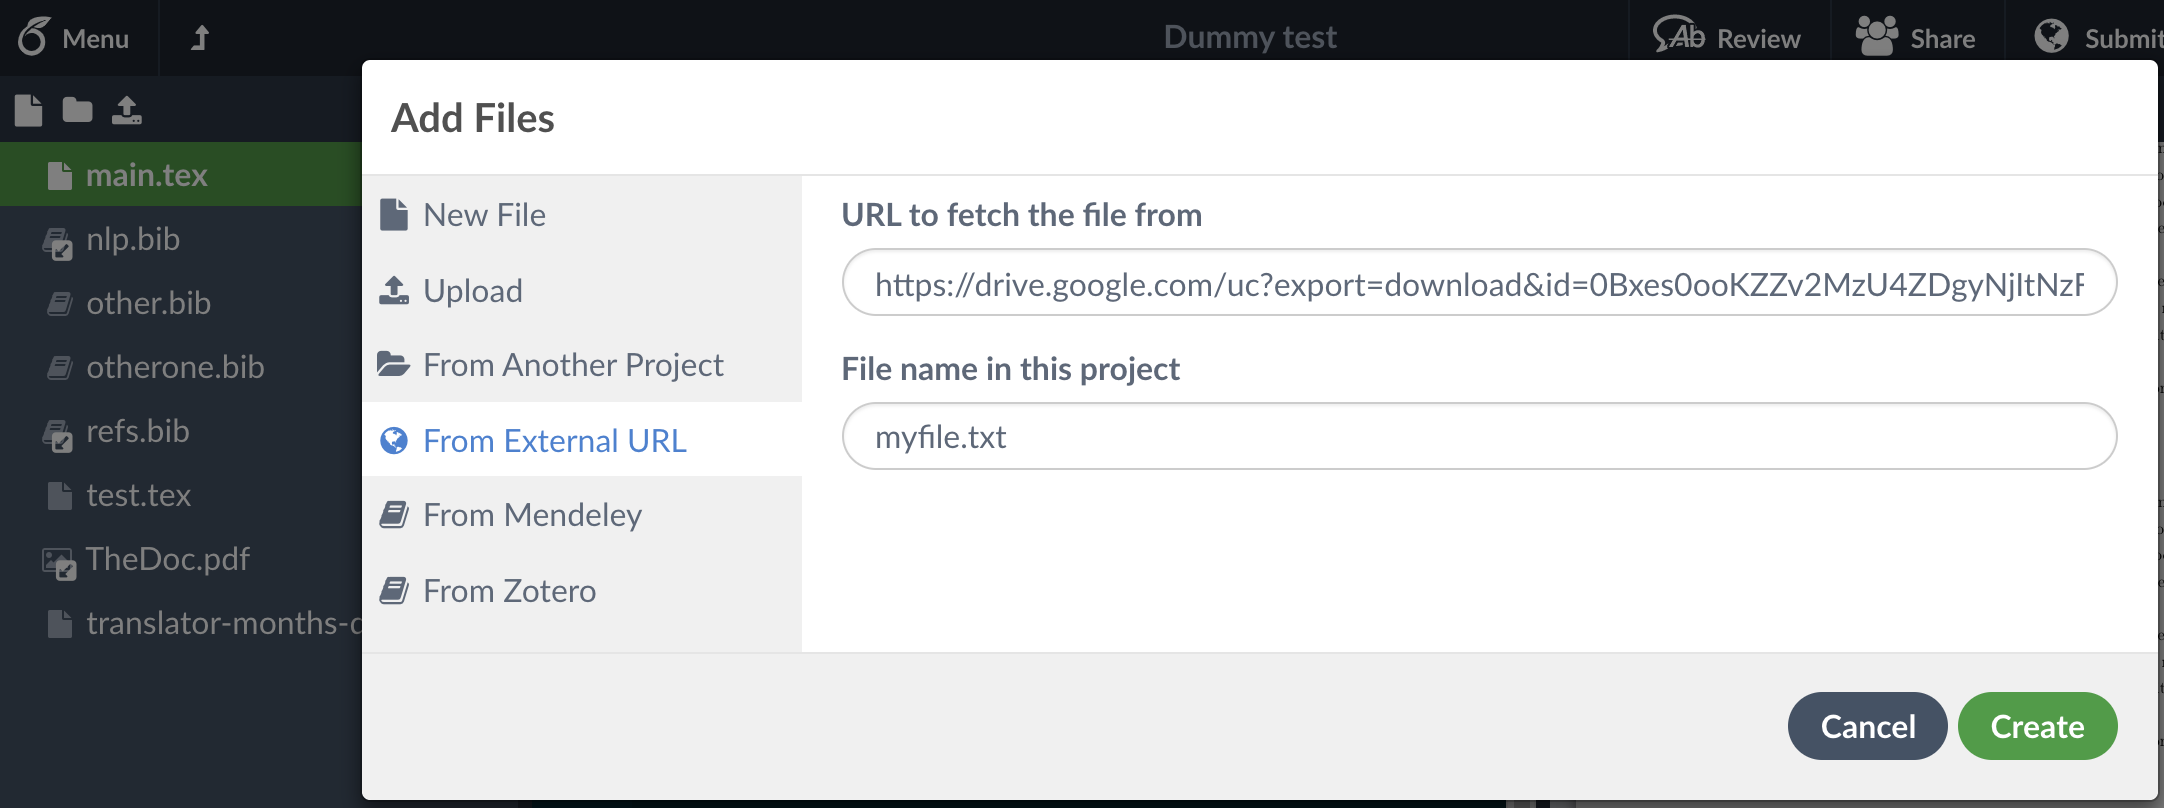 Adding file from Google Drive as a linked file